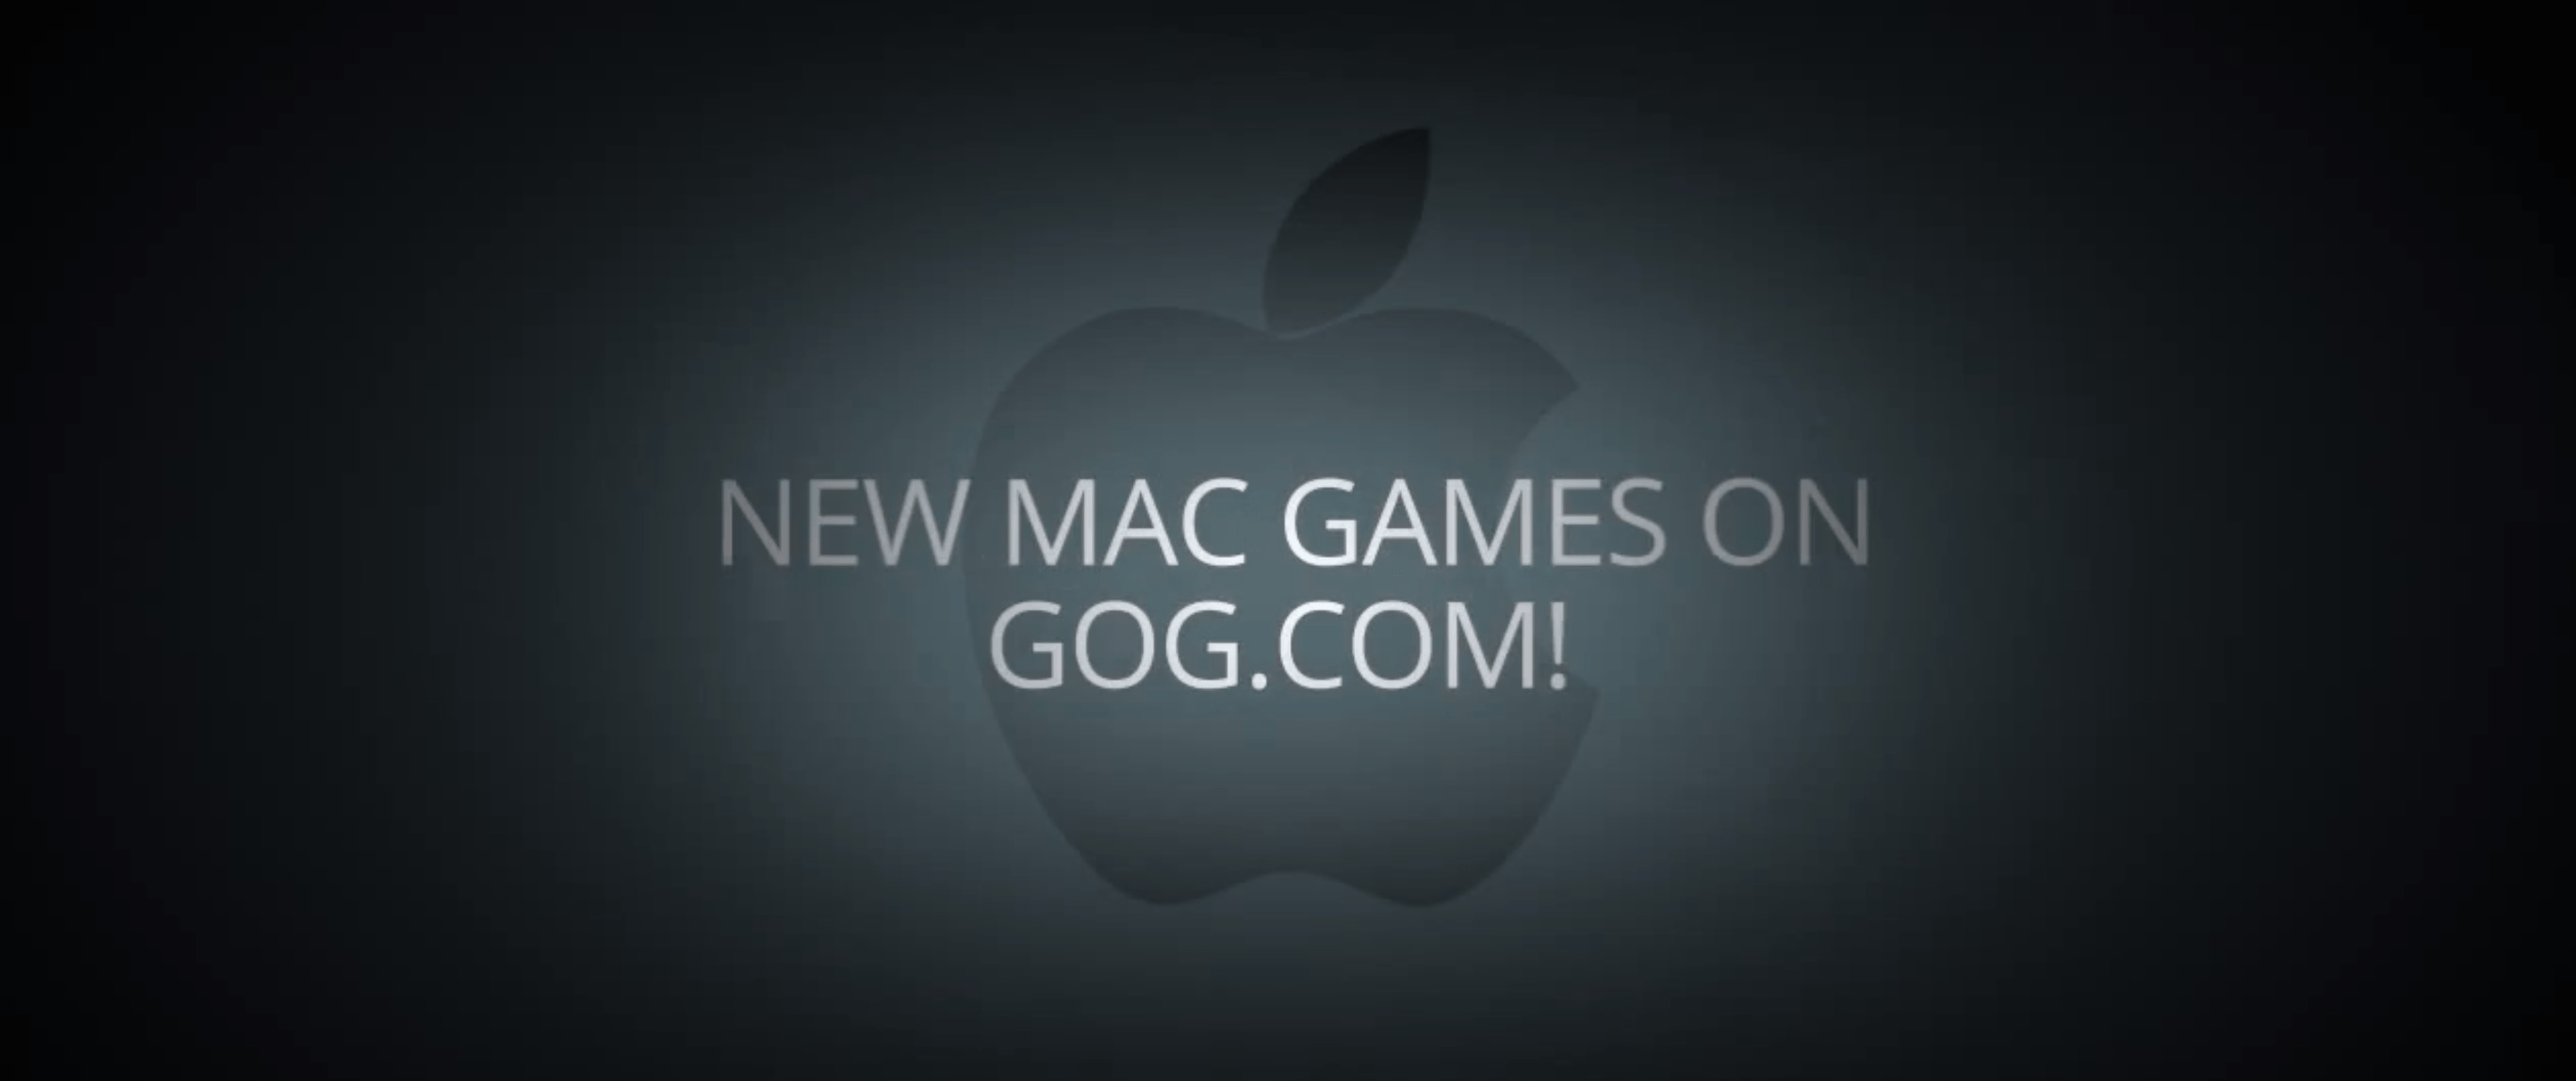 Oh My Gog: Mac versions of Total Annihilation and more